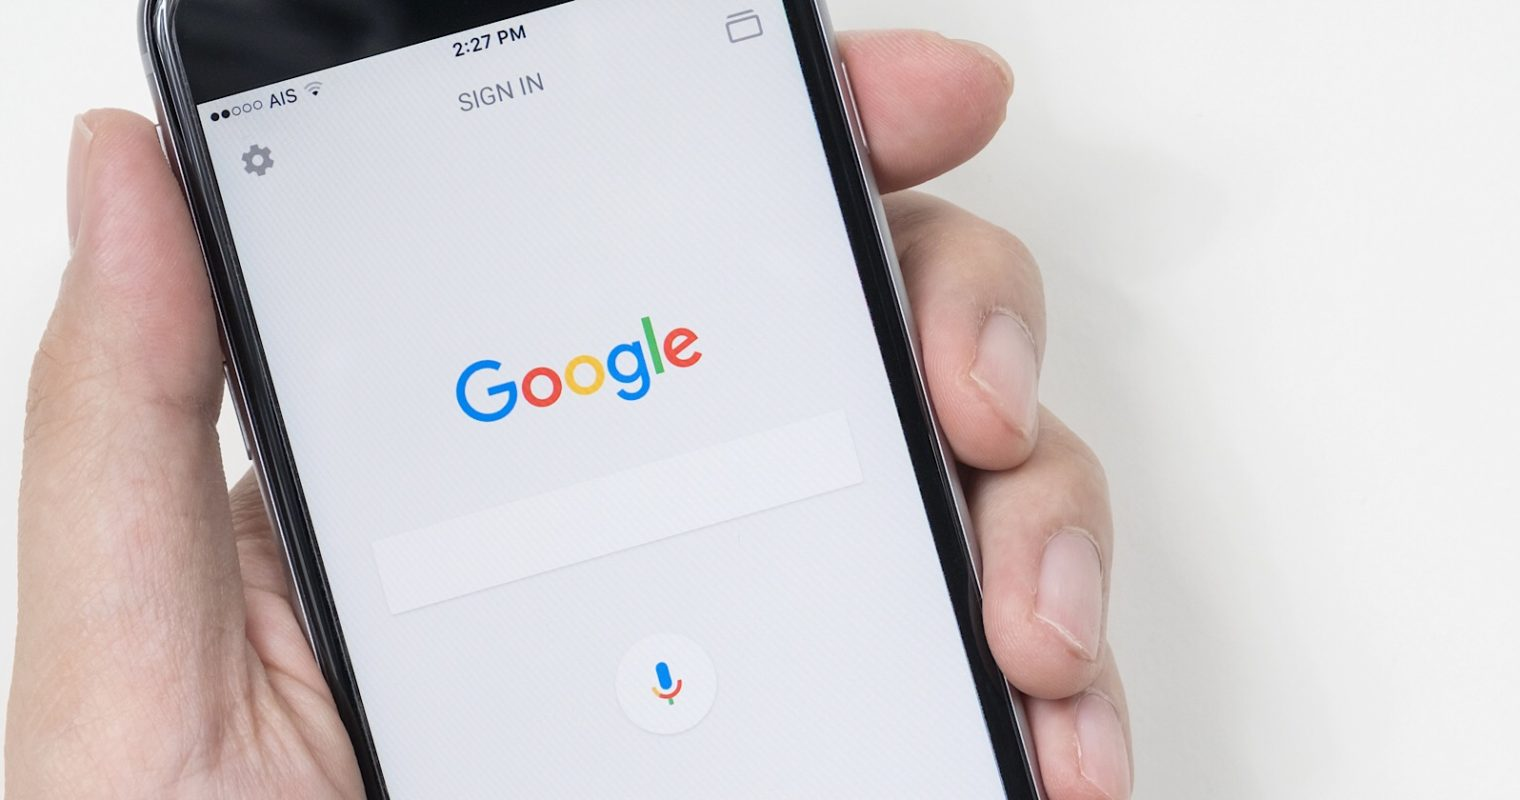 Google iOS Update: Search the Web Without Leaving iMessage